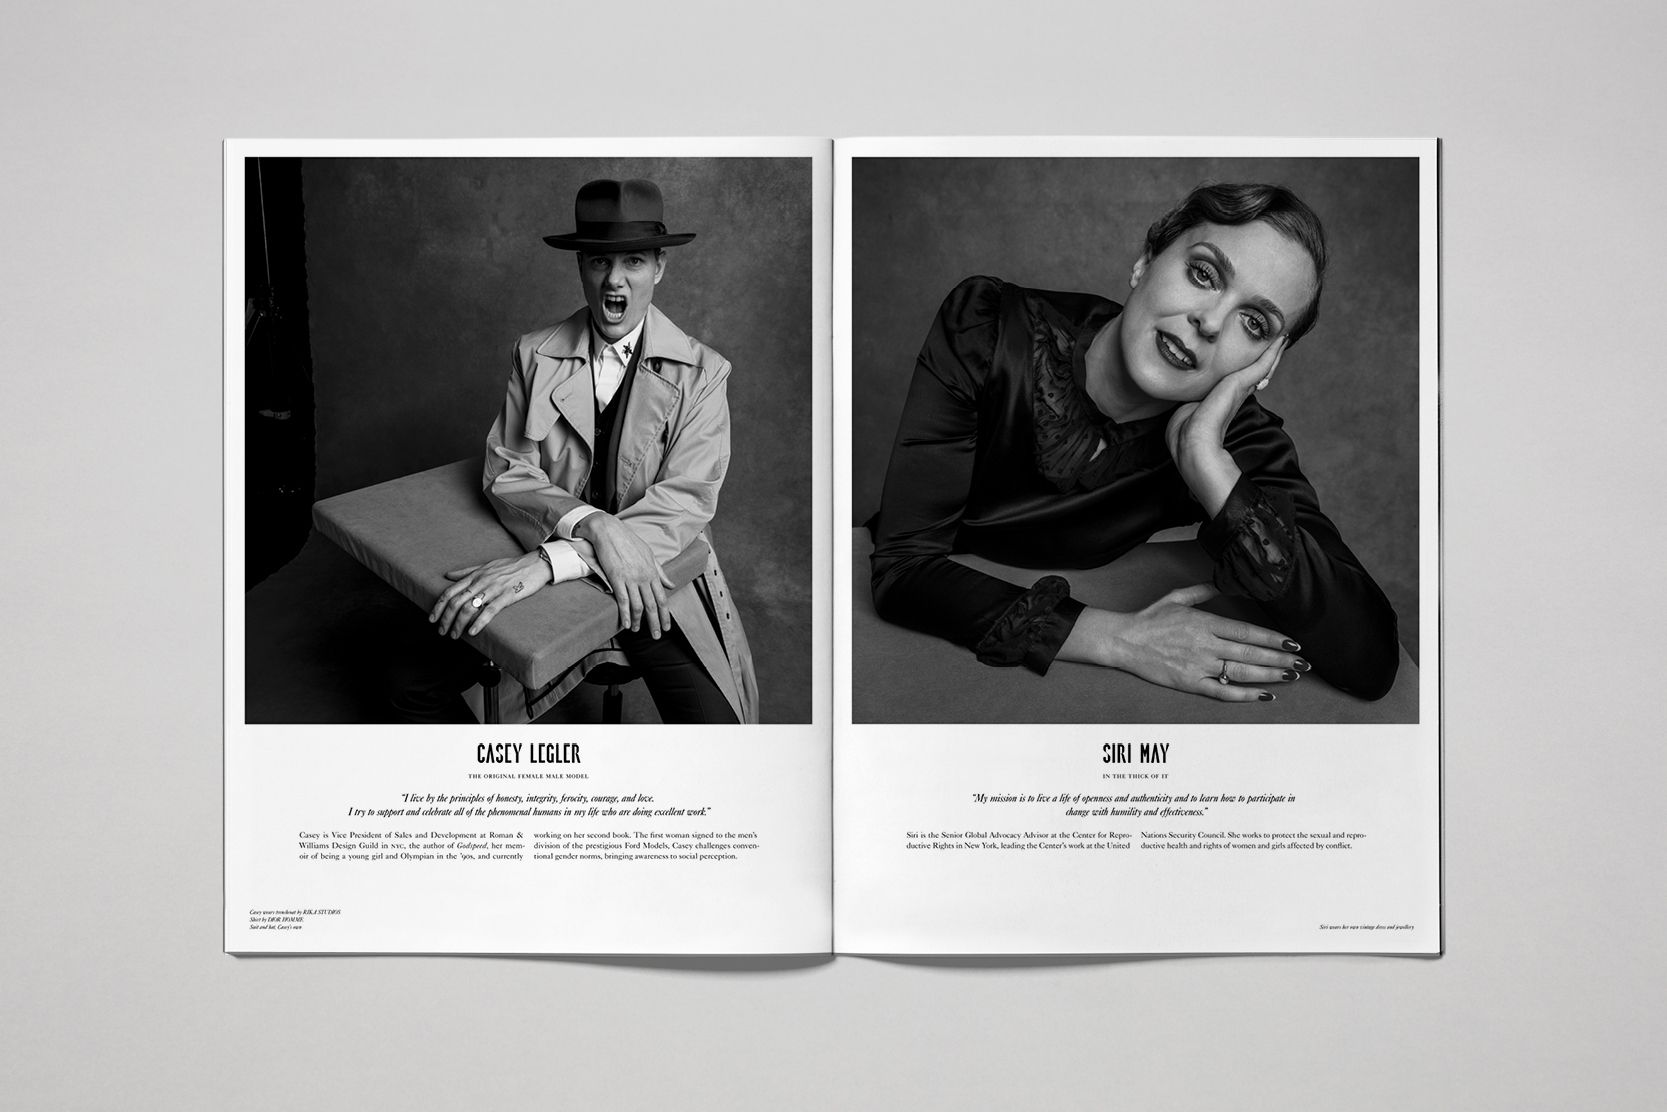 Rika Magazine issue no. 19 Casey Legler and Siri May photographed by Inez & Vinoodh